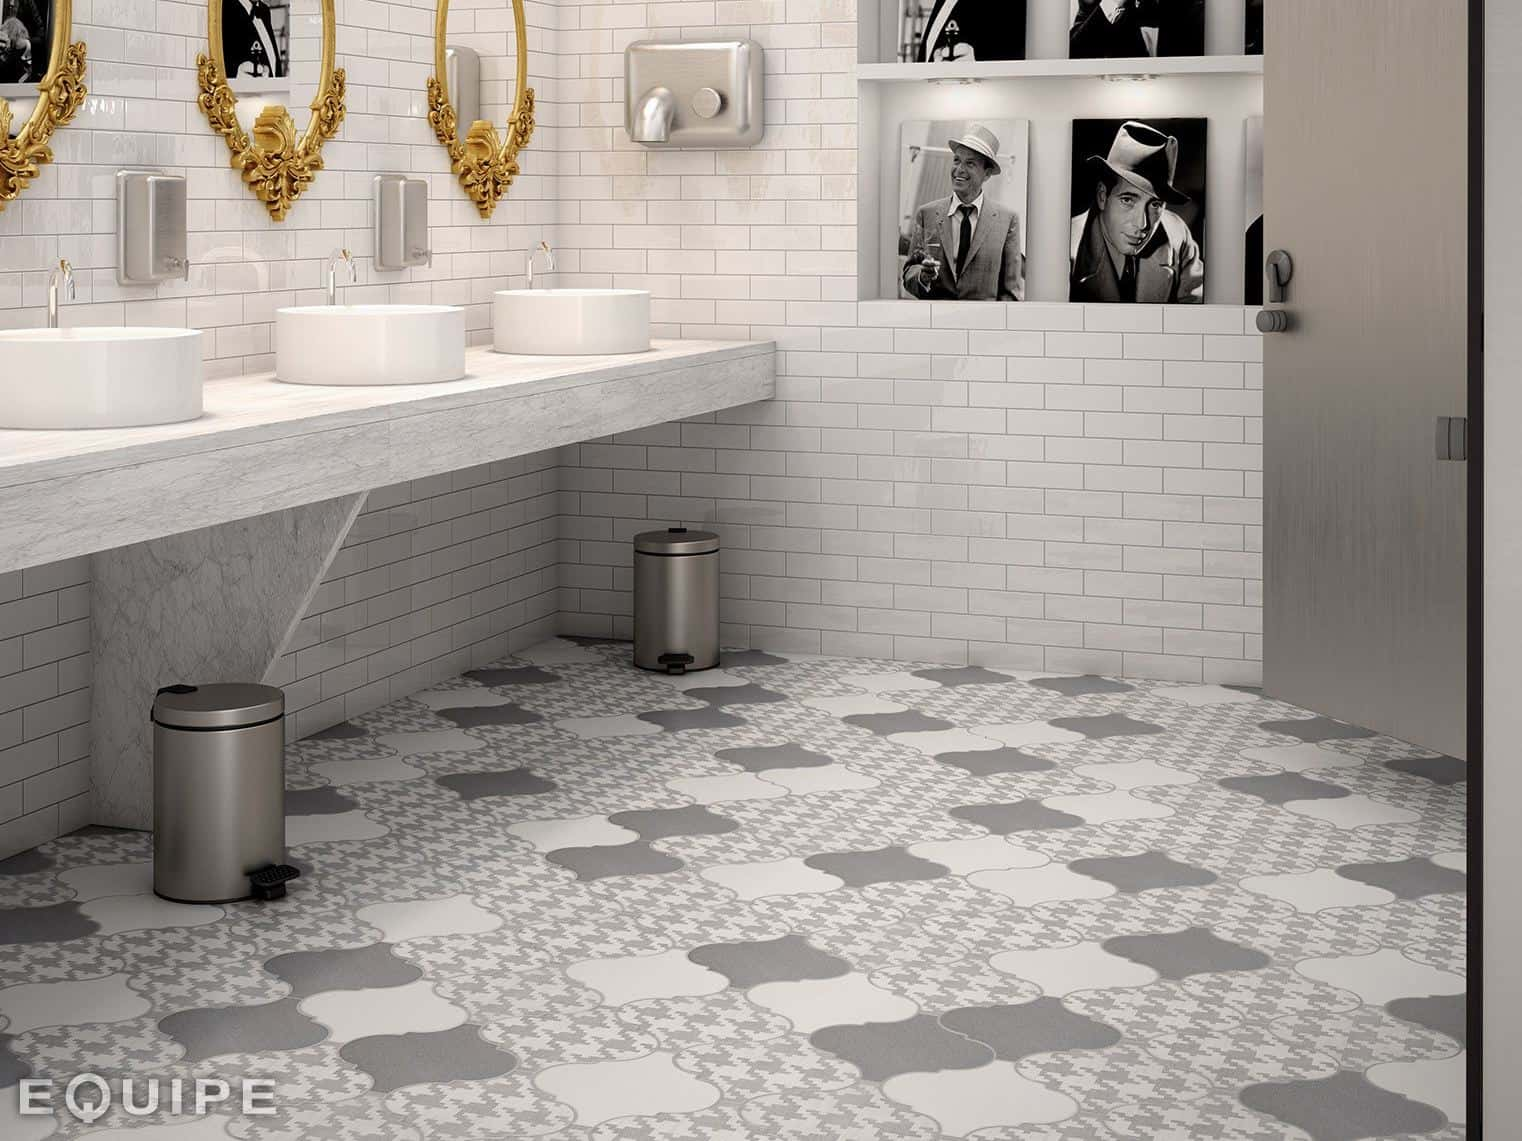 bathroom tile floor and wall ideas 21 arabesque tile ideas for floor wall and backsplash 24960